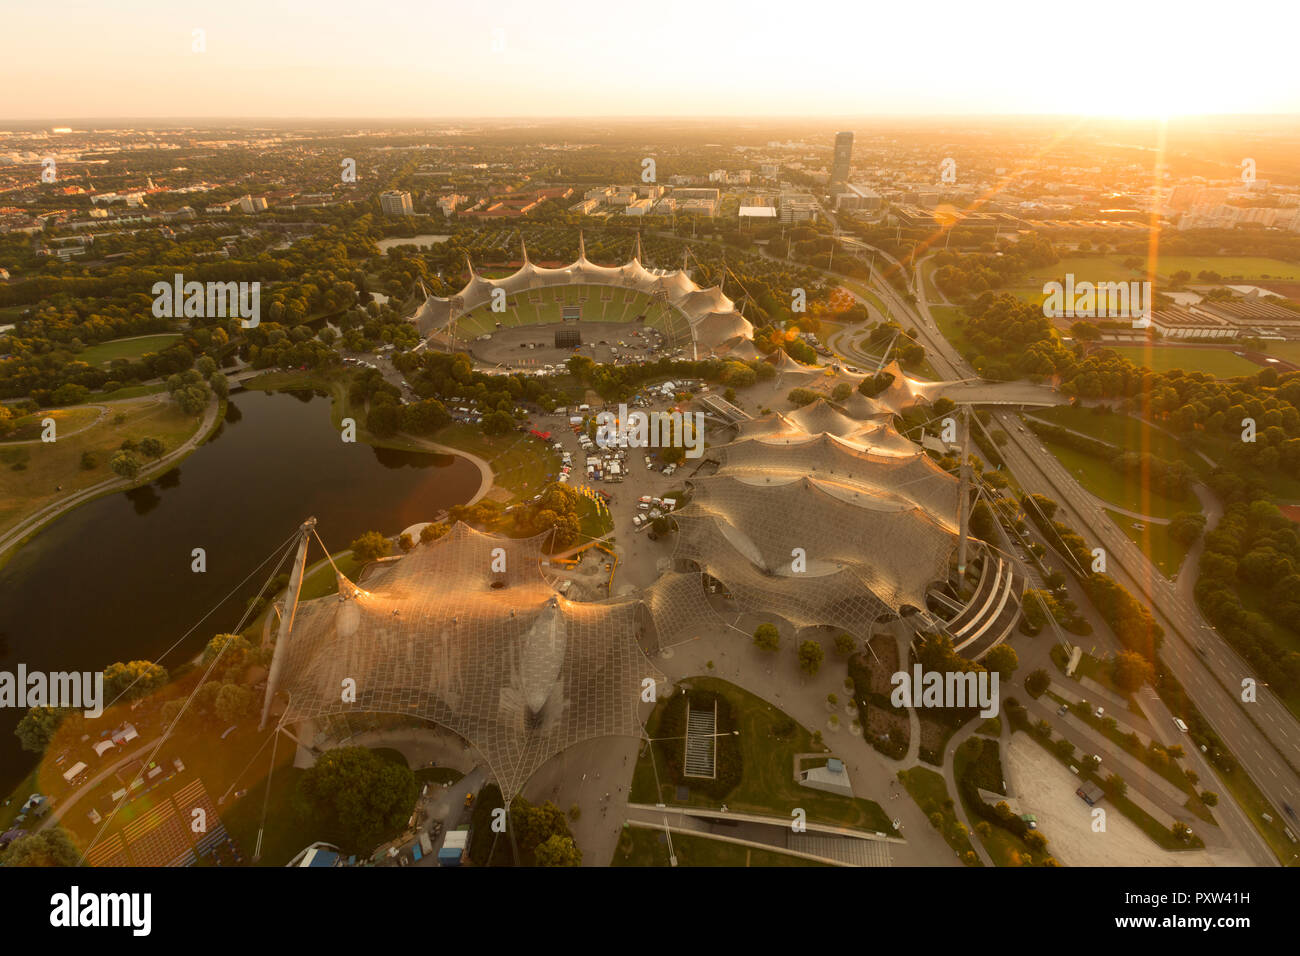 Germany, Munich, View from the Olympic tower over the Olympic area - Stock Image